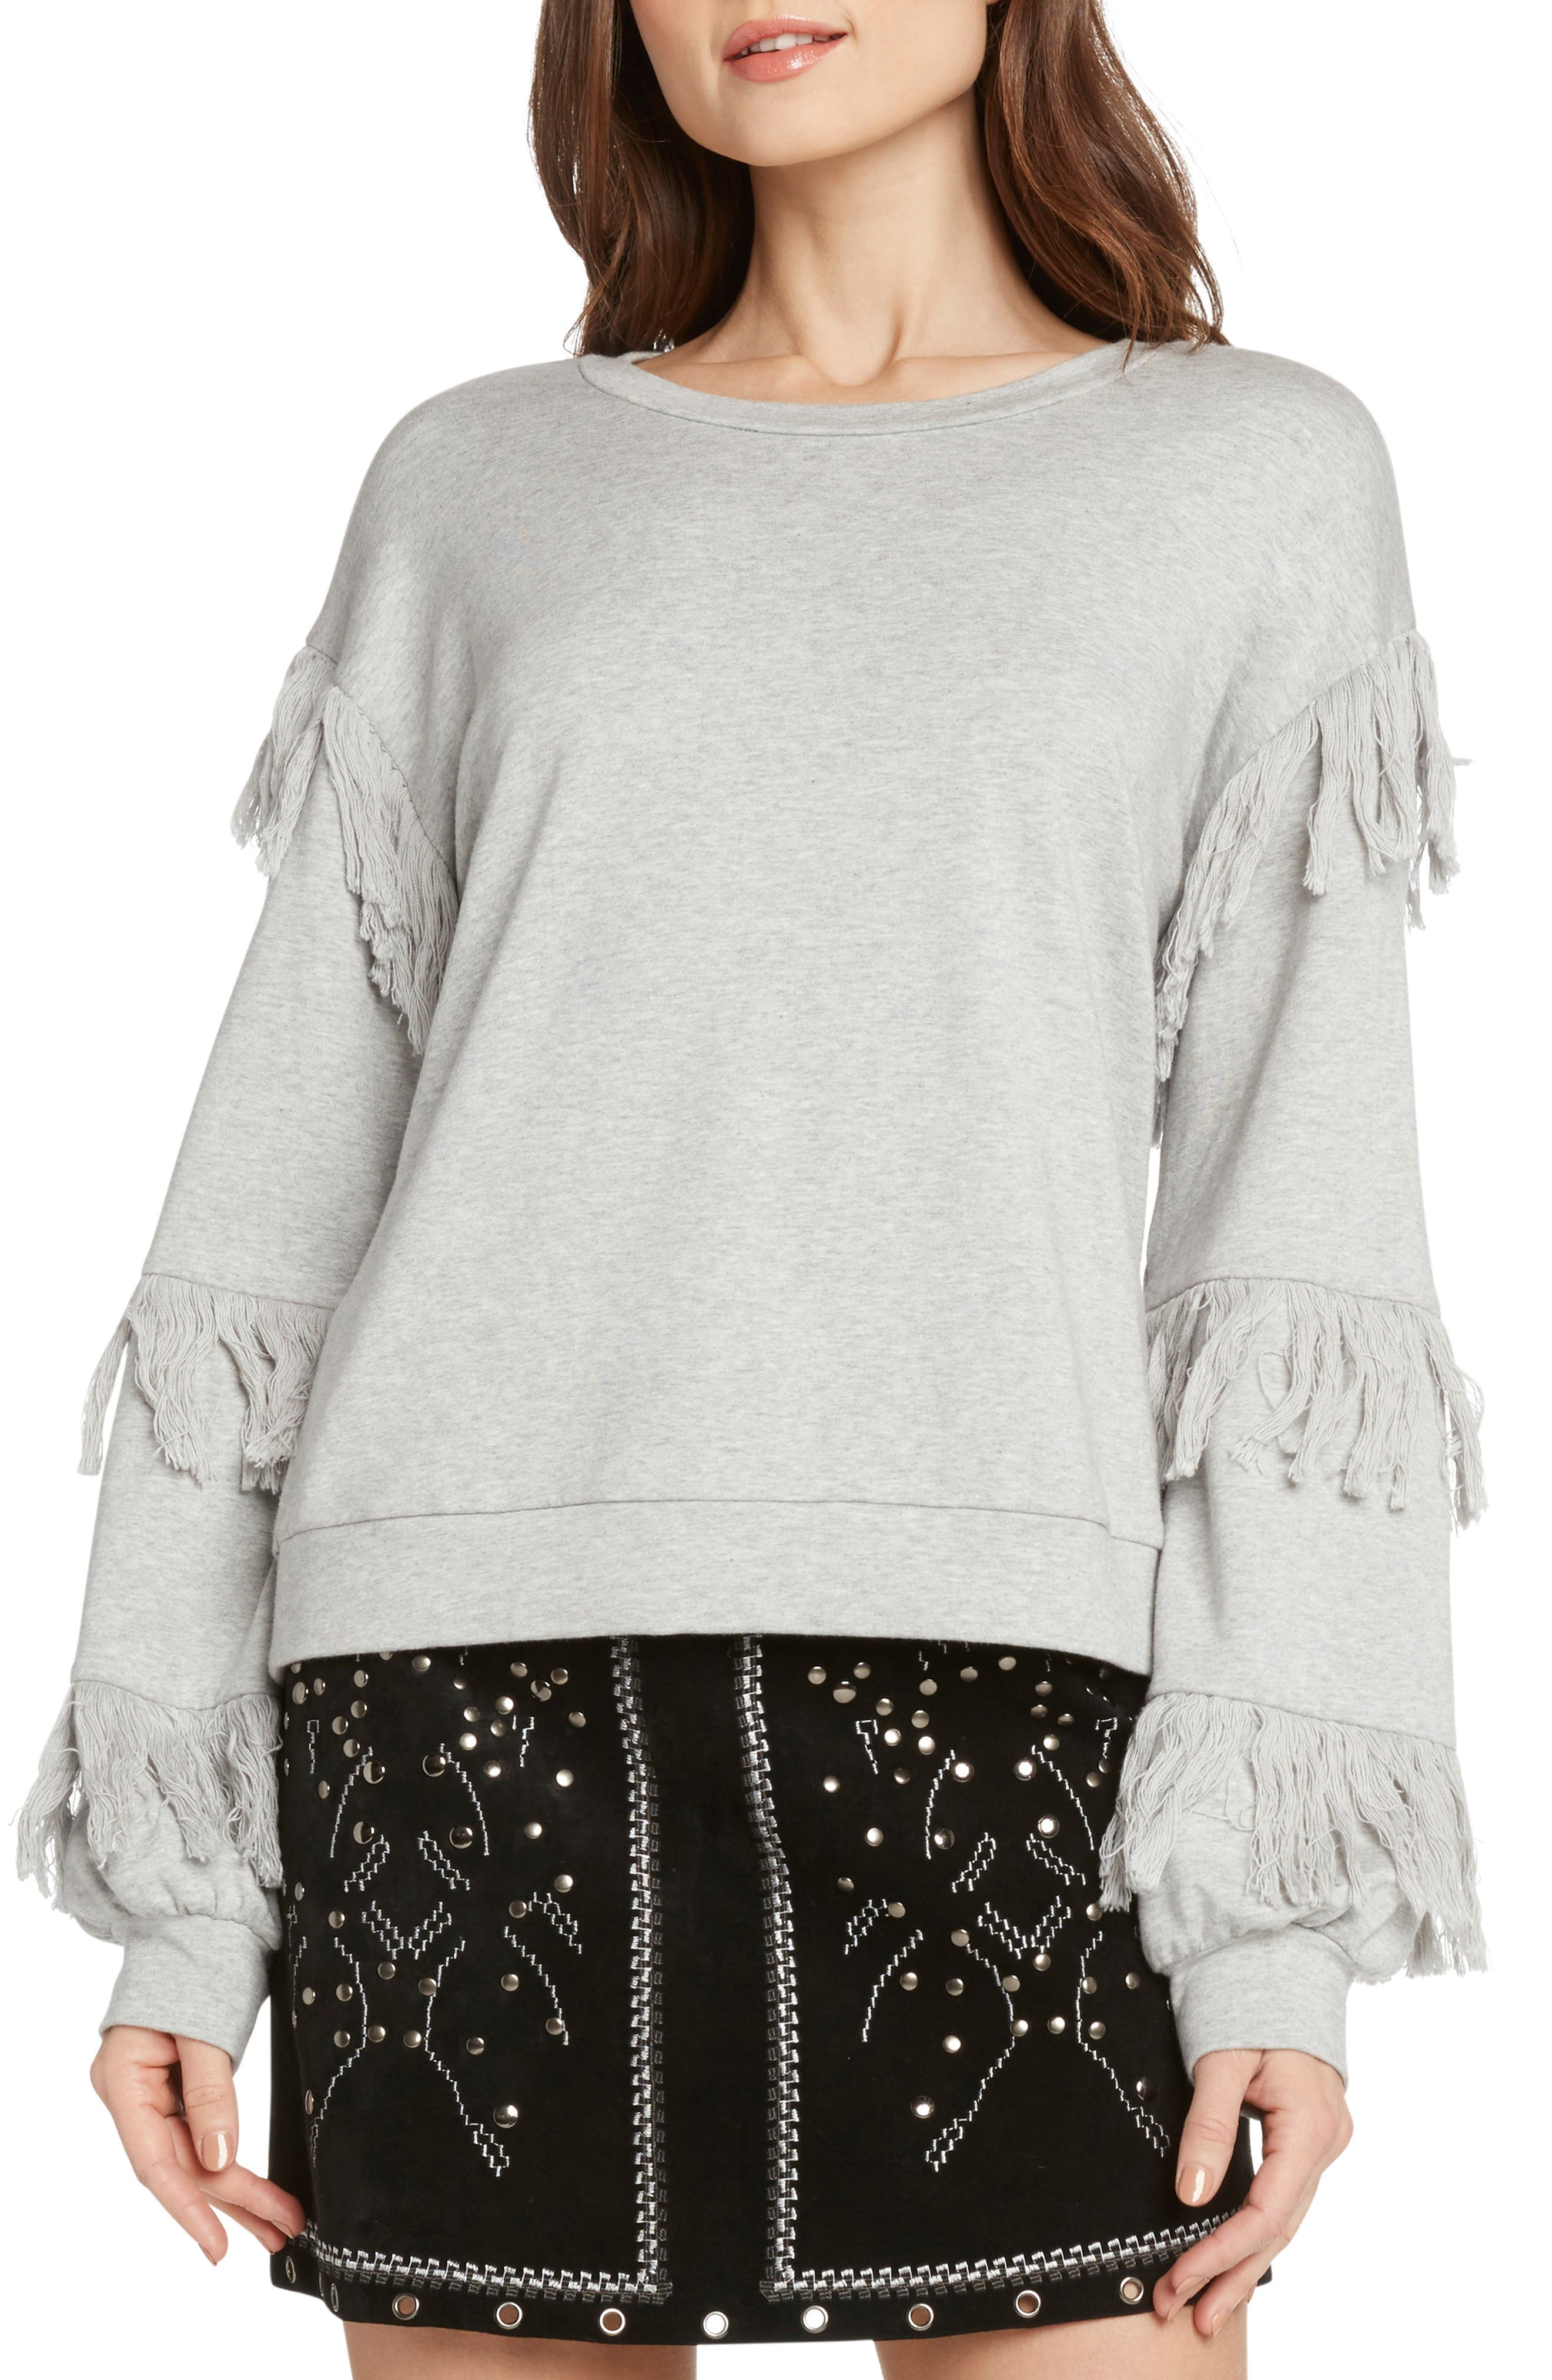 WILLOW & CLAY Fringed French Terry Sweatshirt in Heather Grey